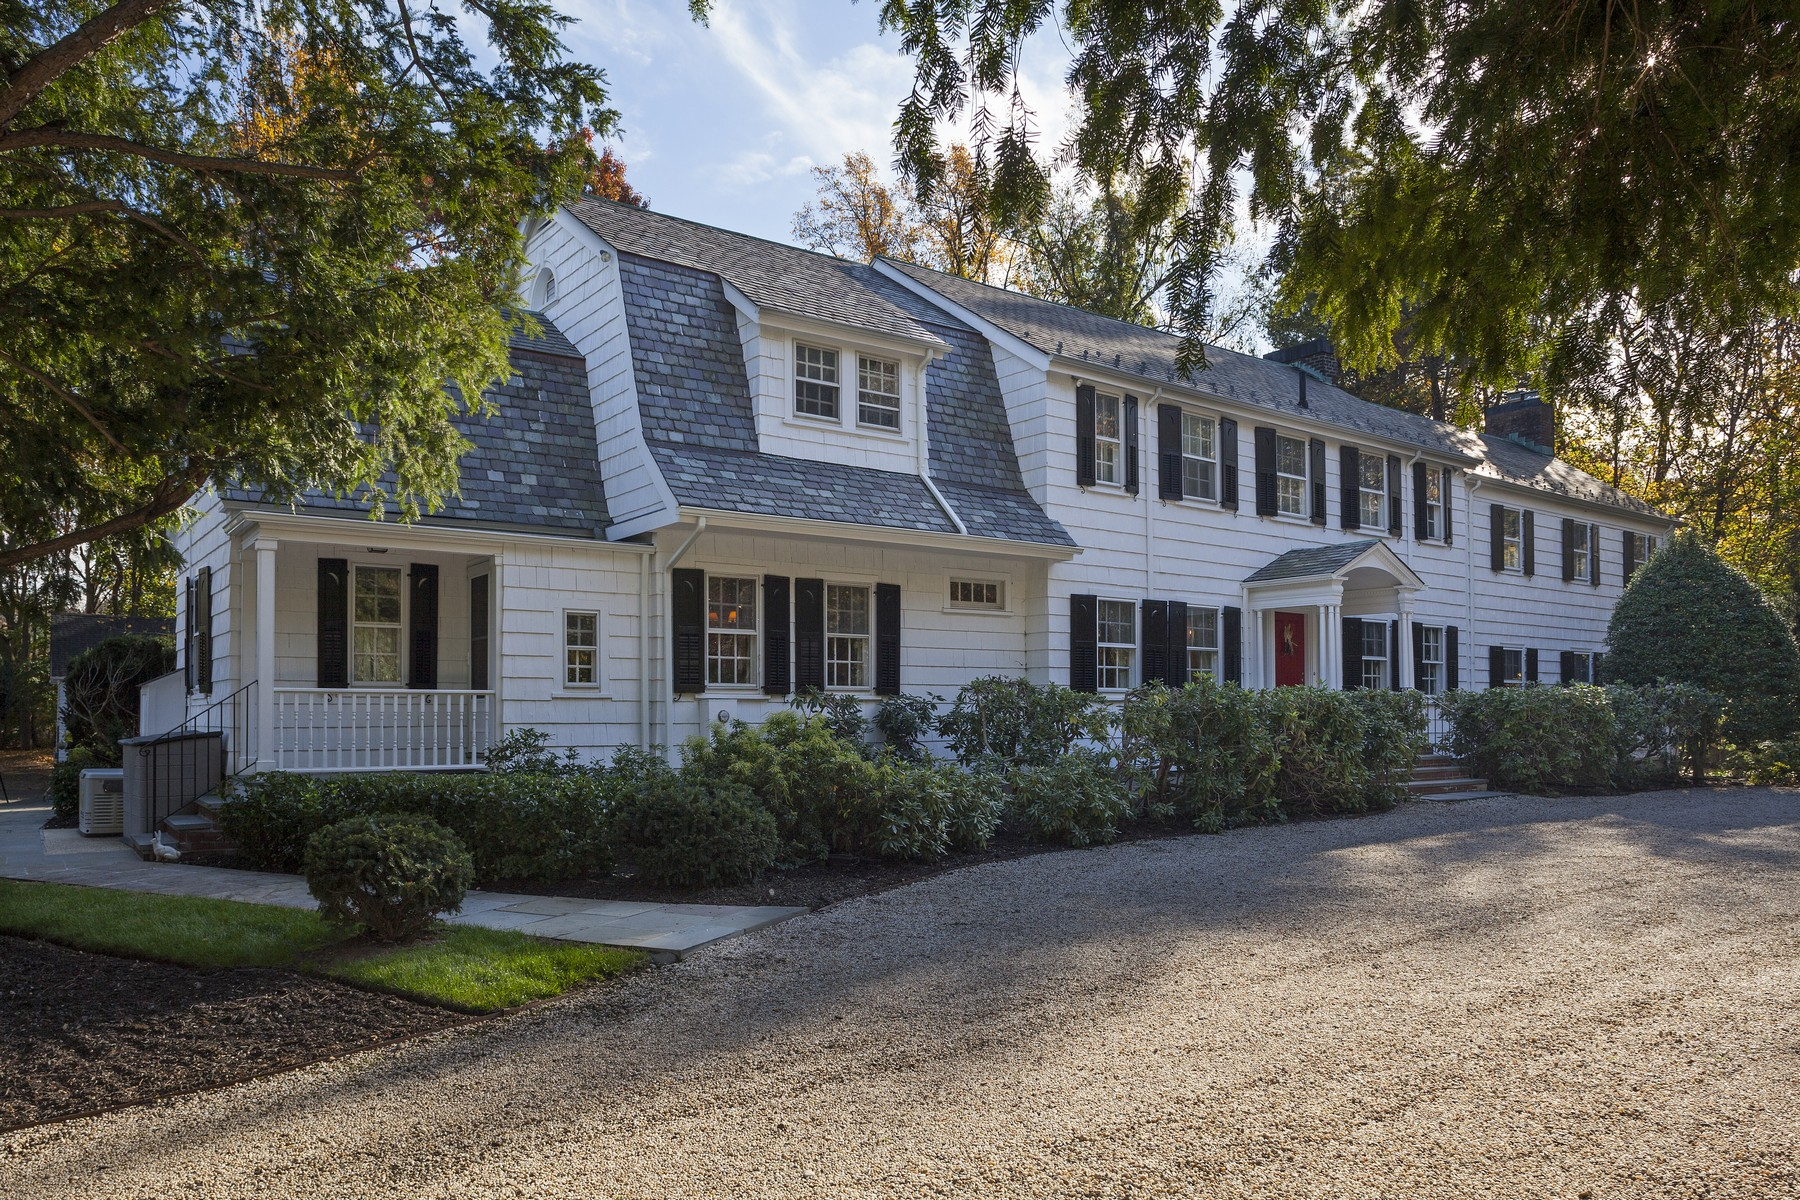 Single Family Home for Sale at Estate 308 Feeks Ln Mill Neck, New York 11765 United States